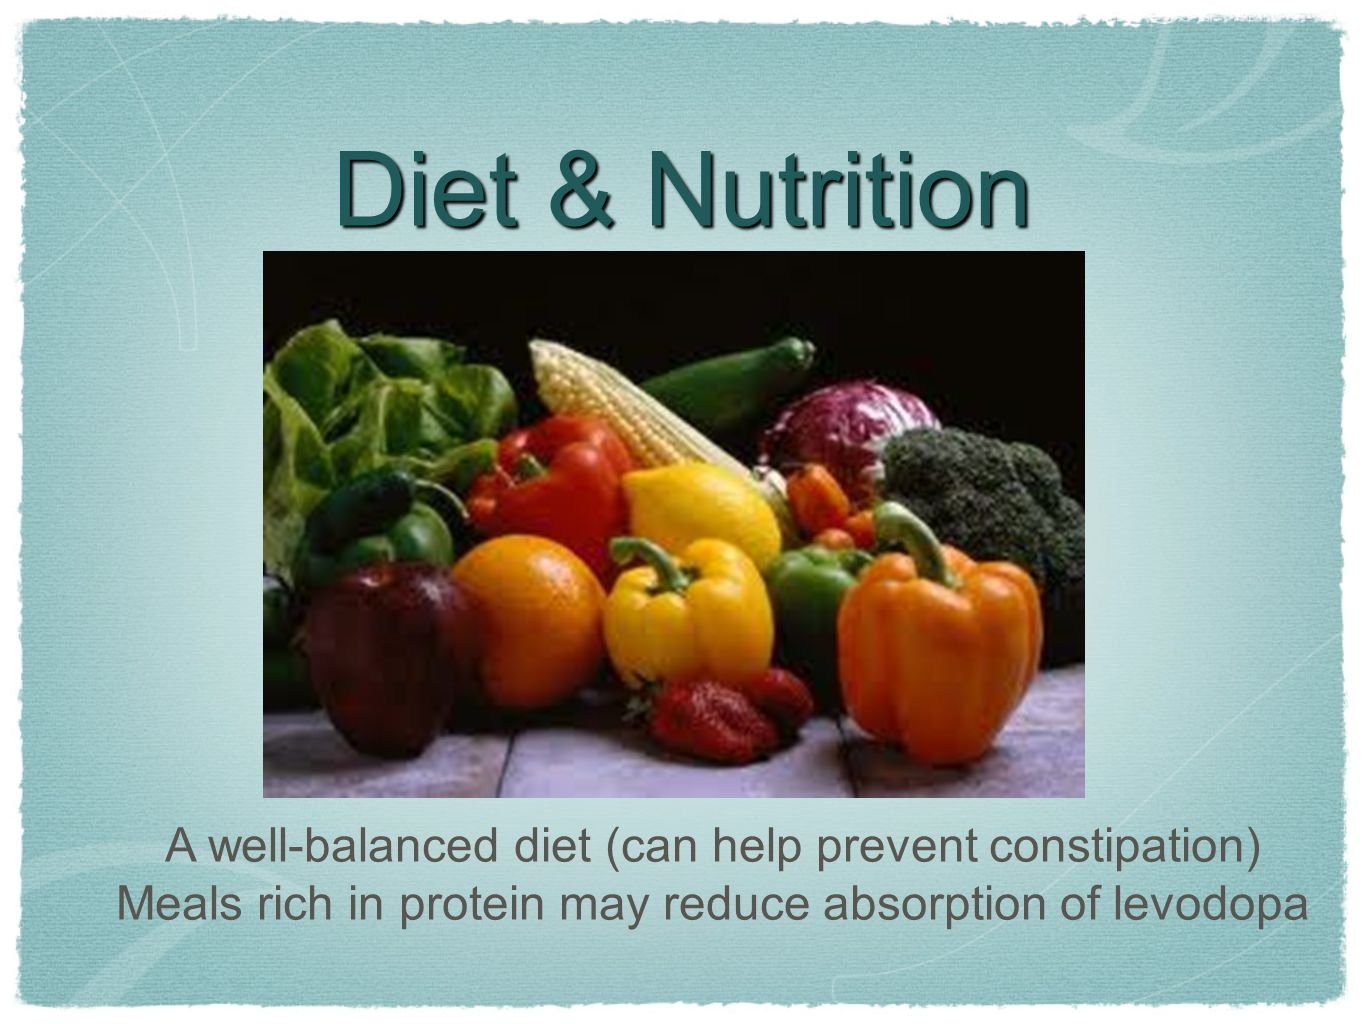 Diet & Nutrition A well-balanced diet (can help prevent constipation)